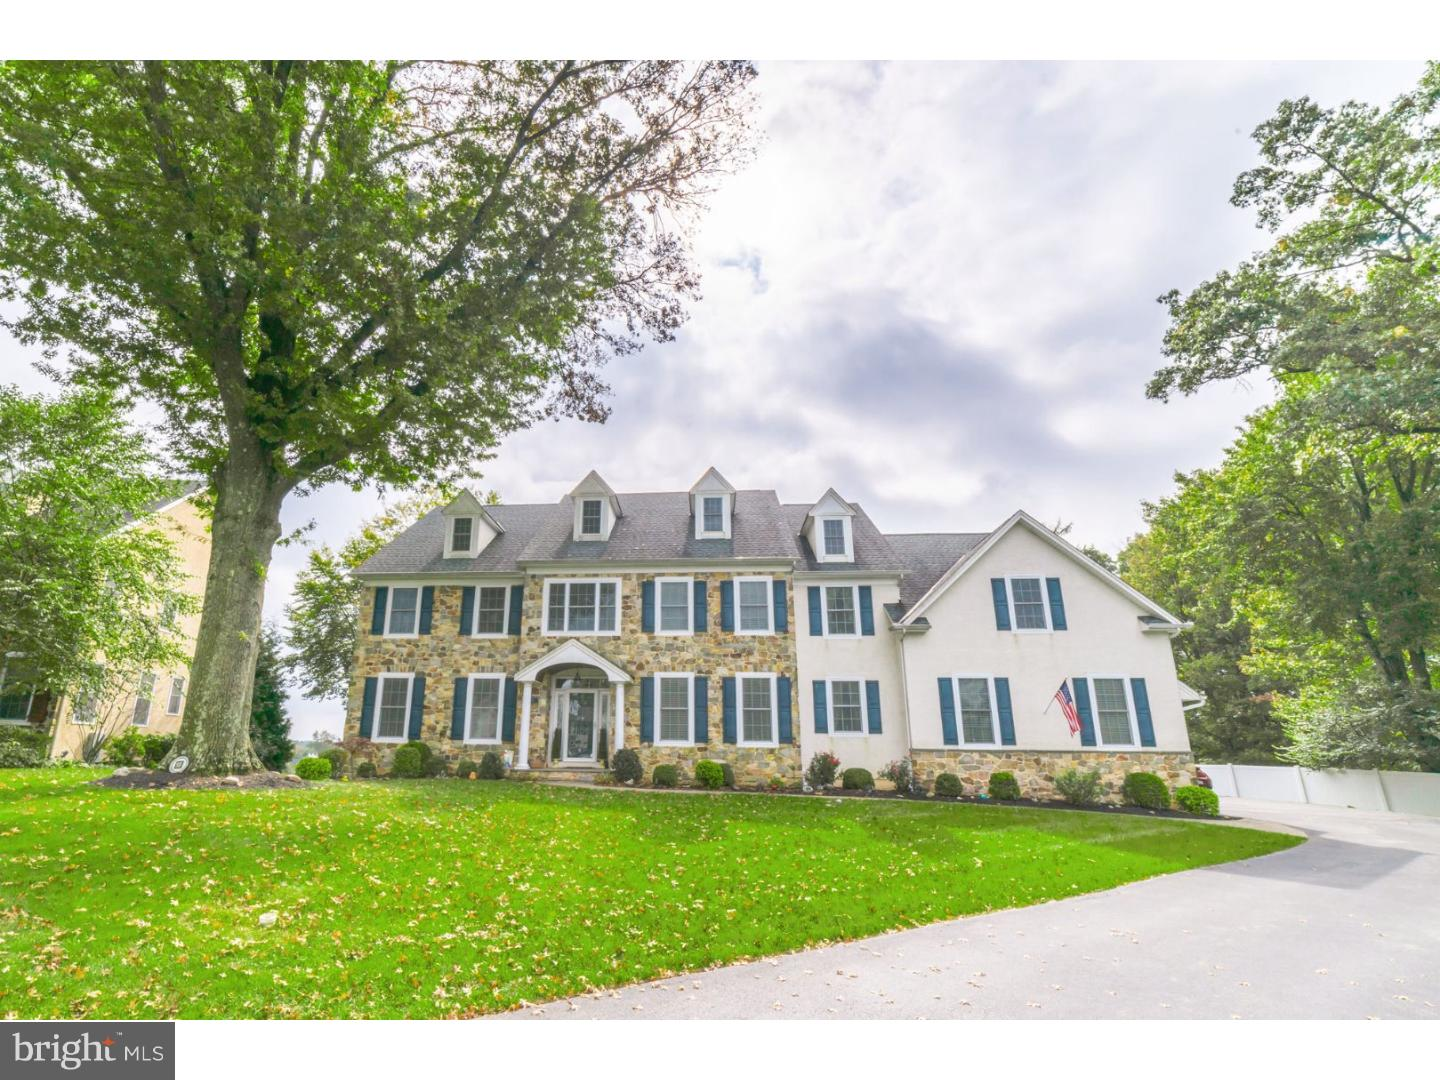 1509 SORBER DRIVE, WEST CHESTER, PA 19380